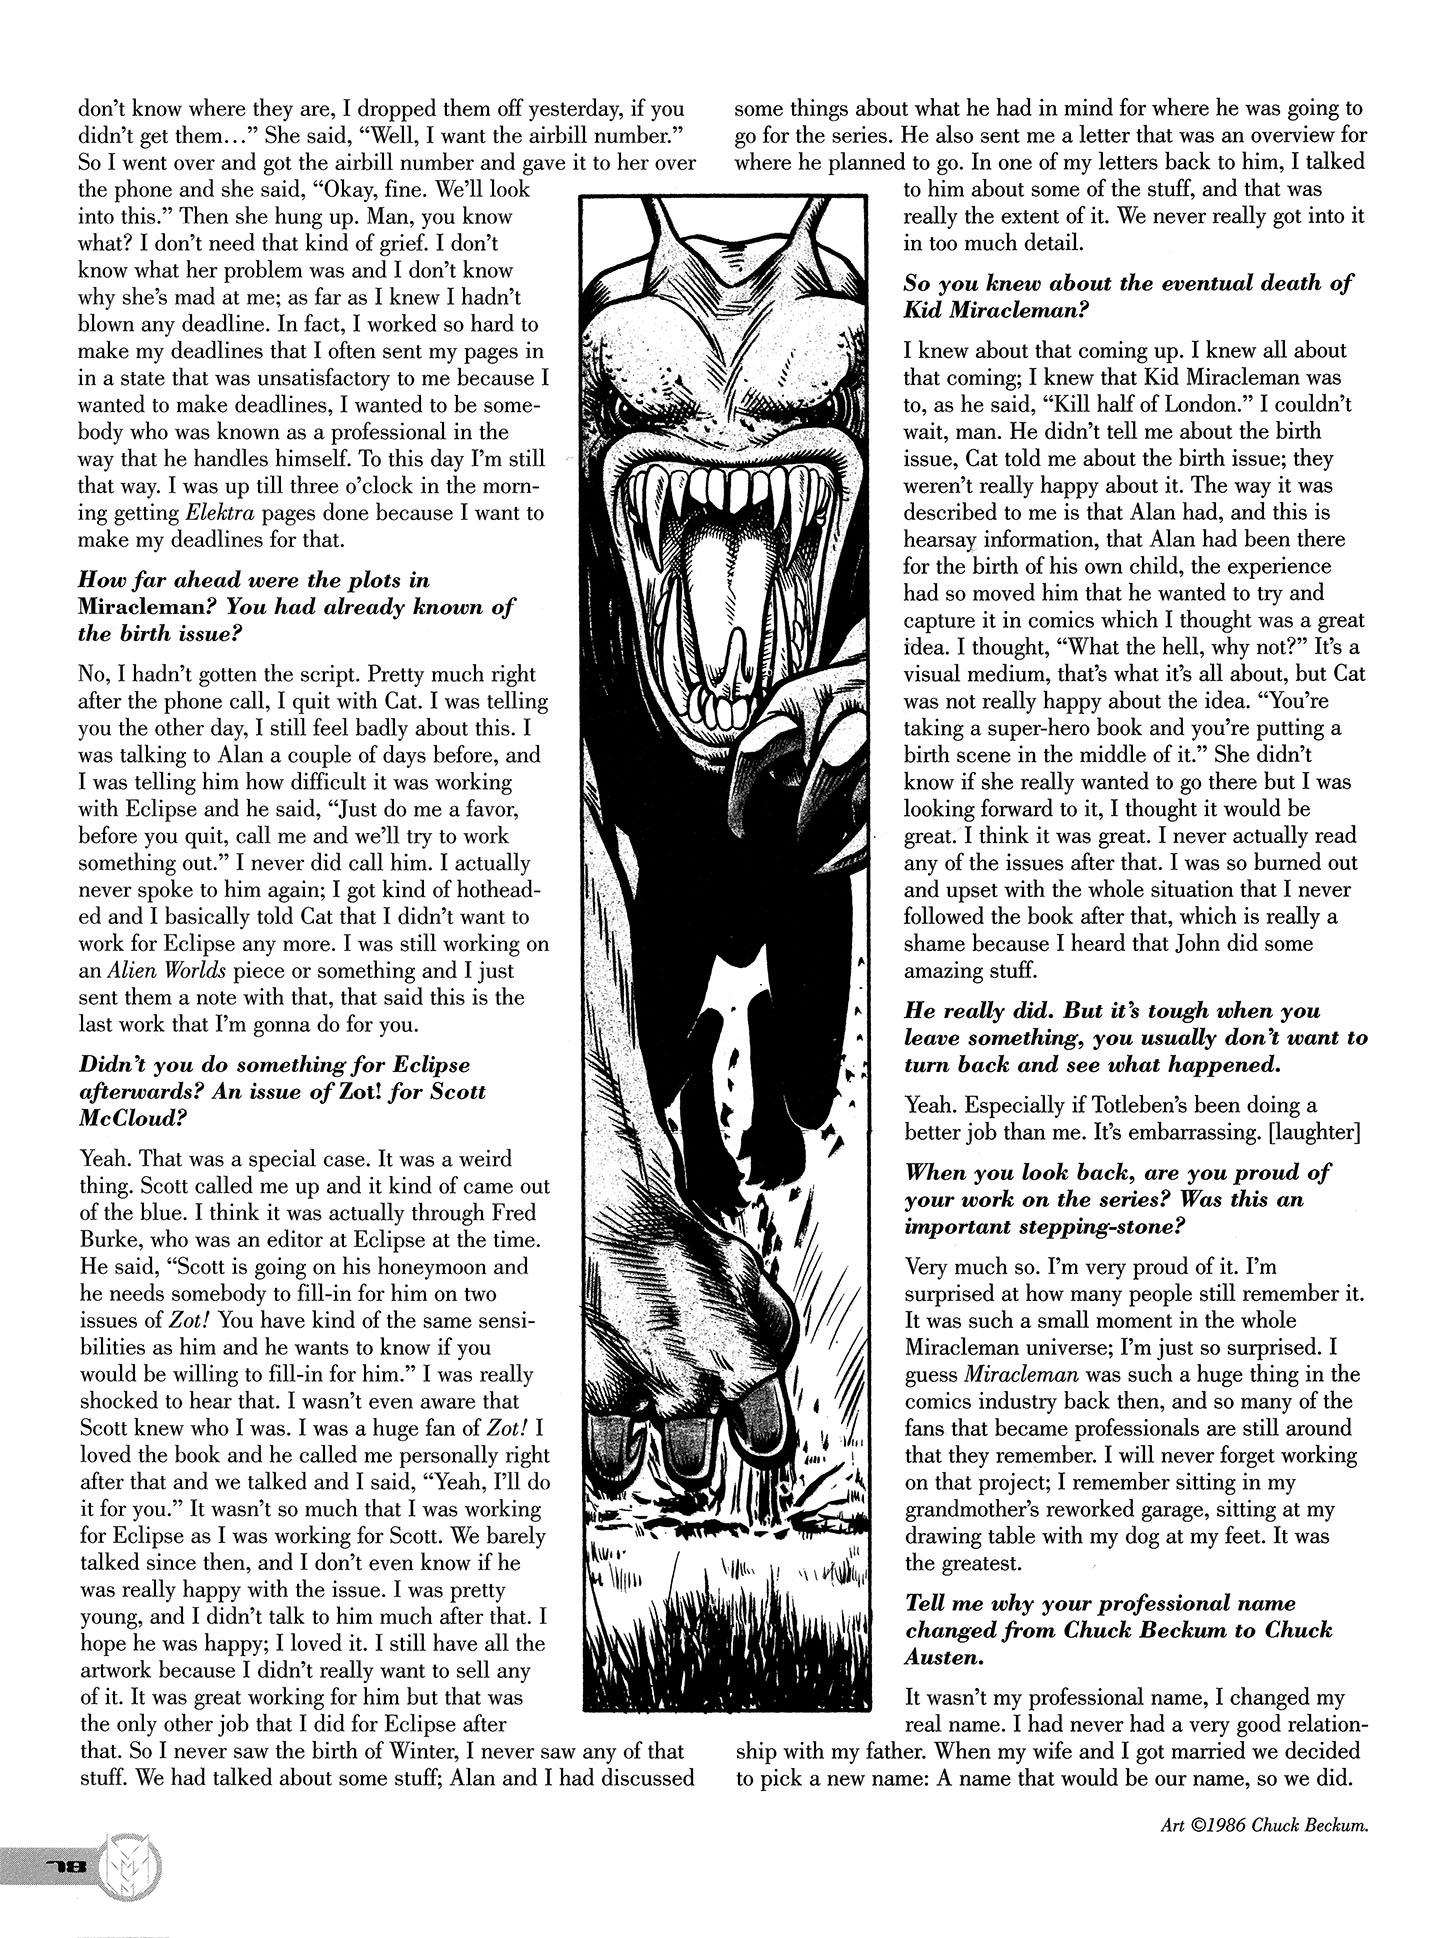 Read online Kimota!: The Miracleman Companion comic -  Issue # Full - 79